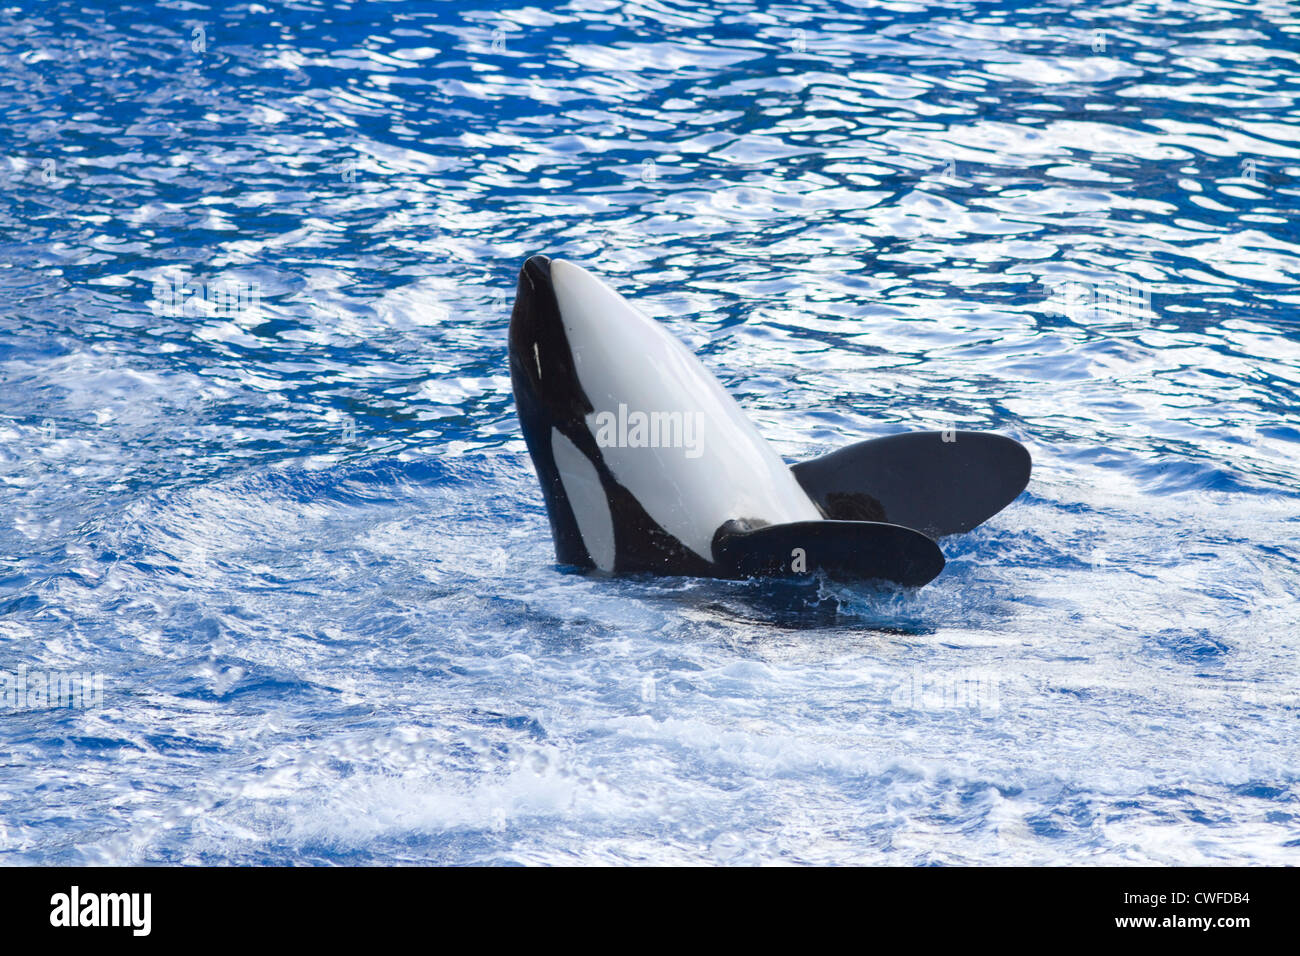 Orca whale in the pool at Seaworld Orlando Fl - Stock Image